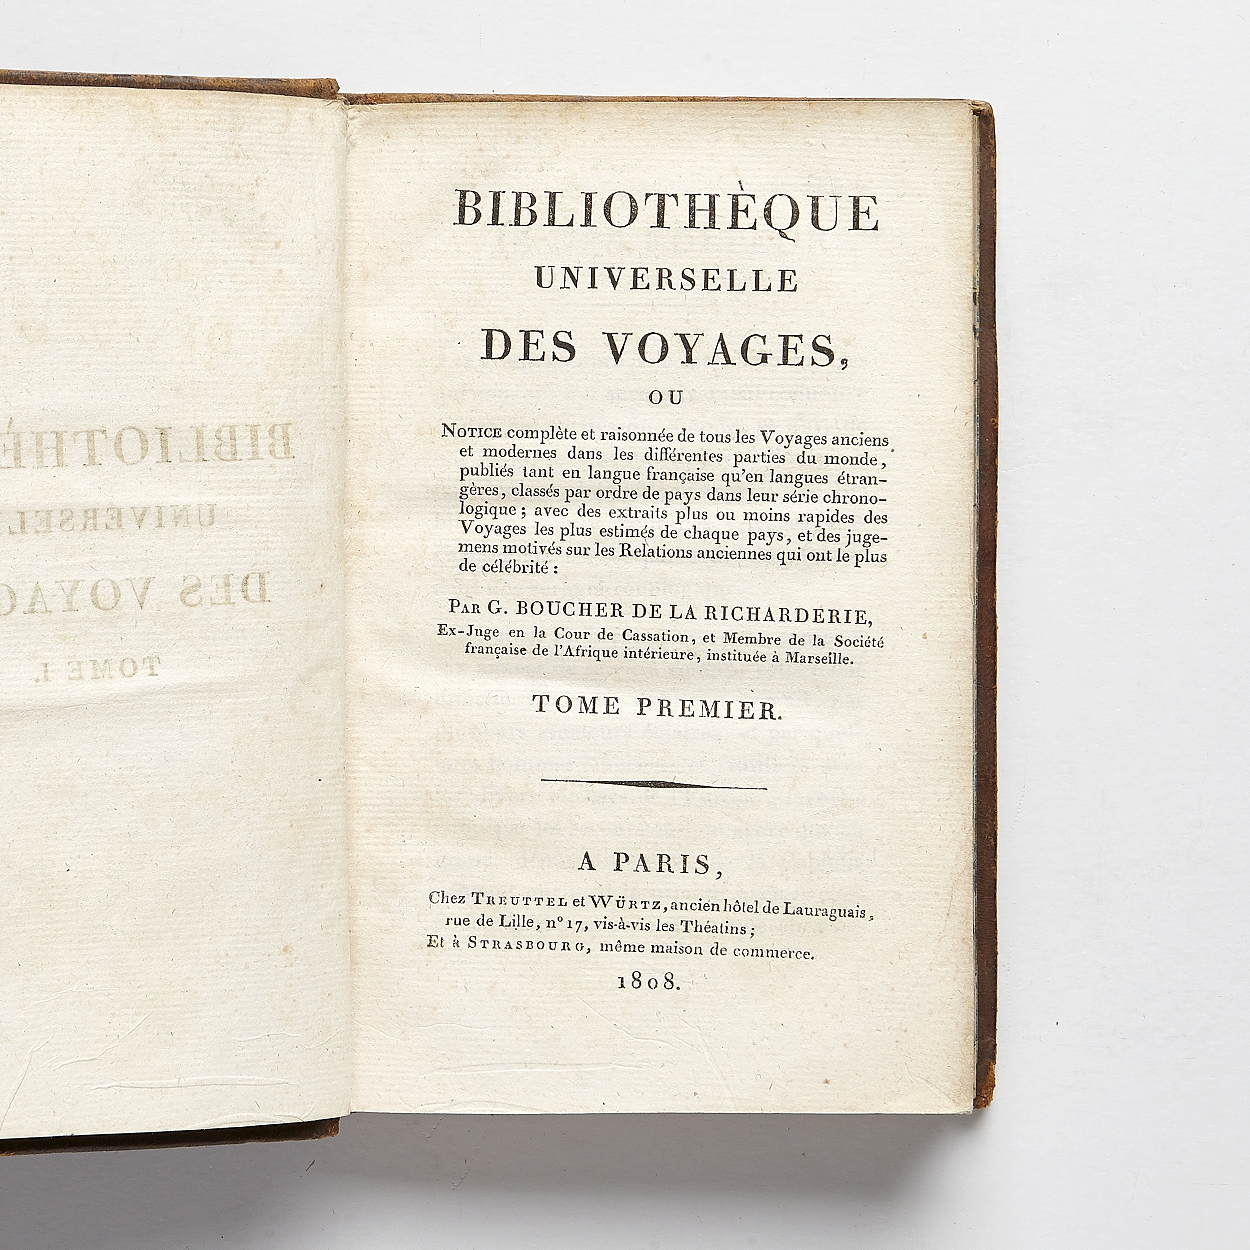 A bibliography of travels 1808